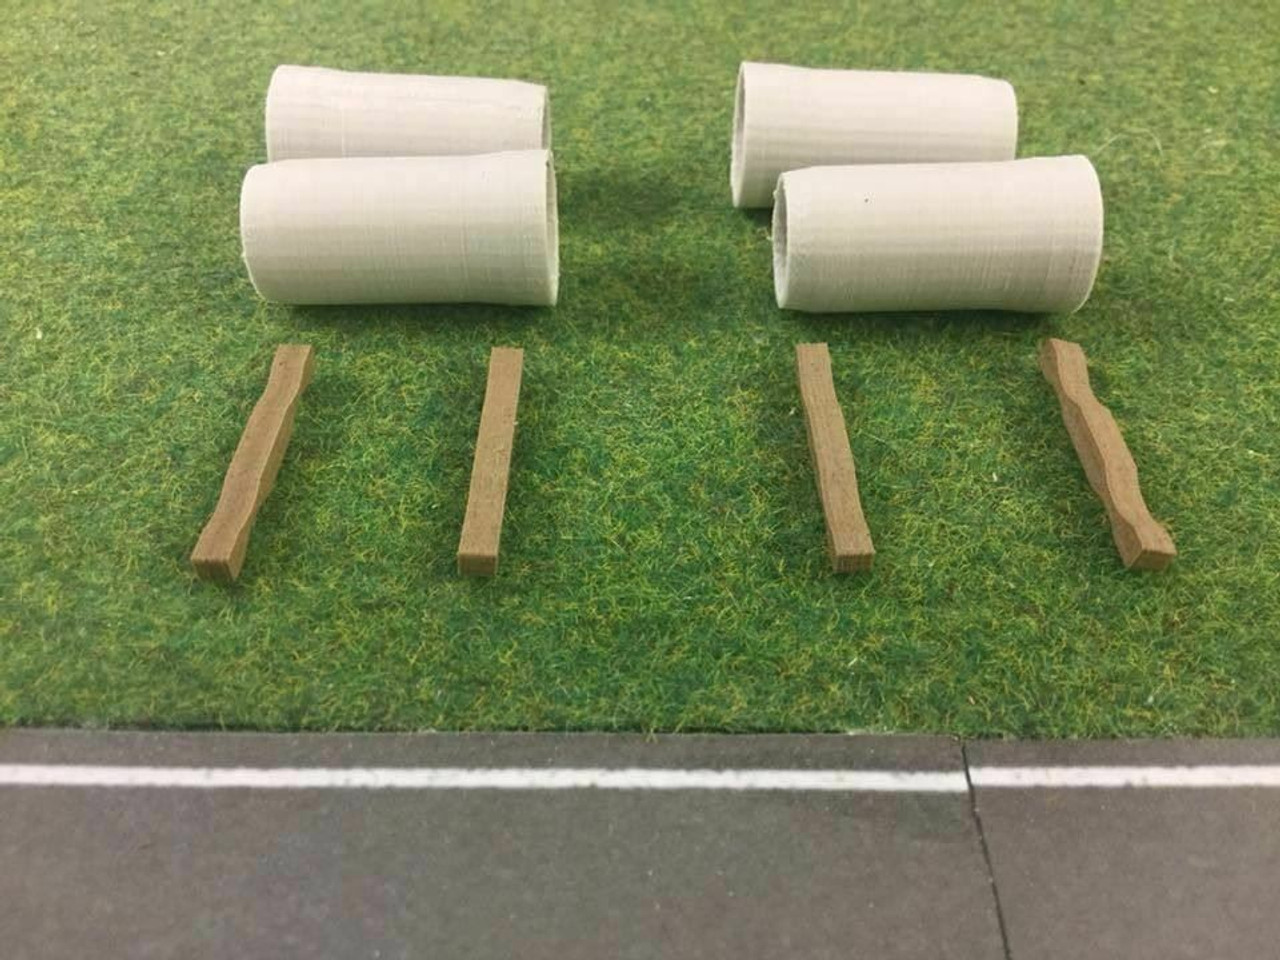 1:76 3D Printed Concrete pipes and batons - 4pk